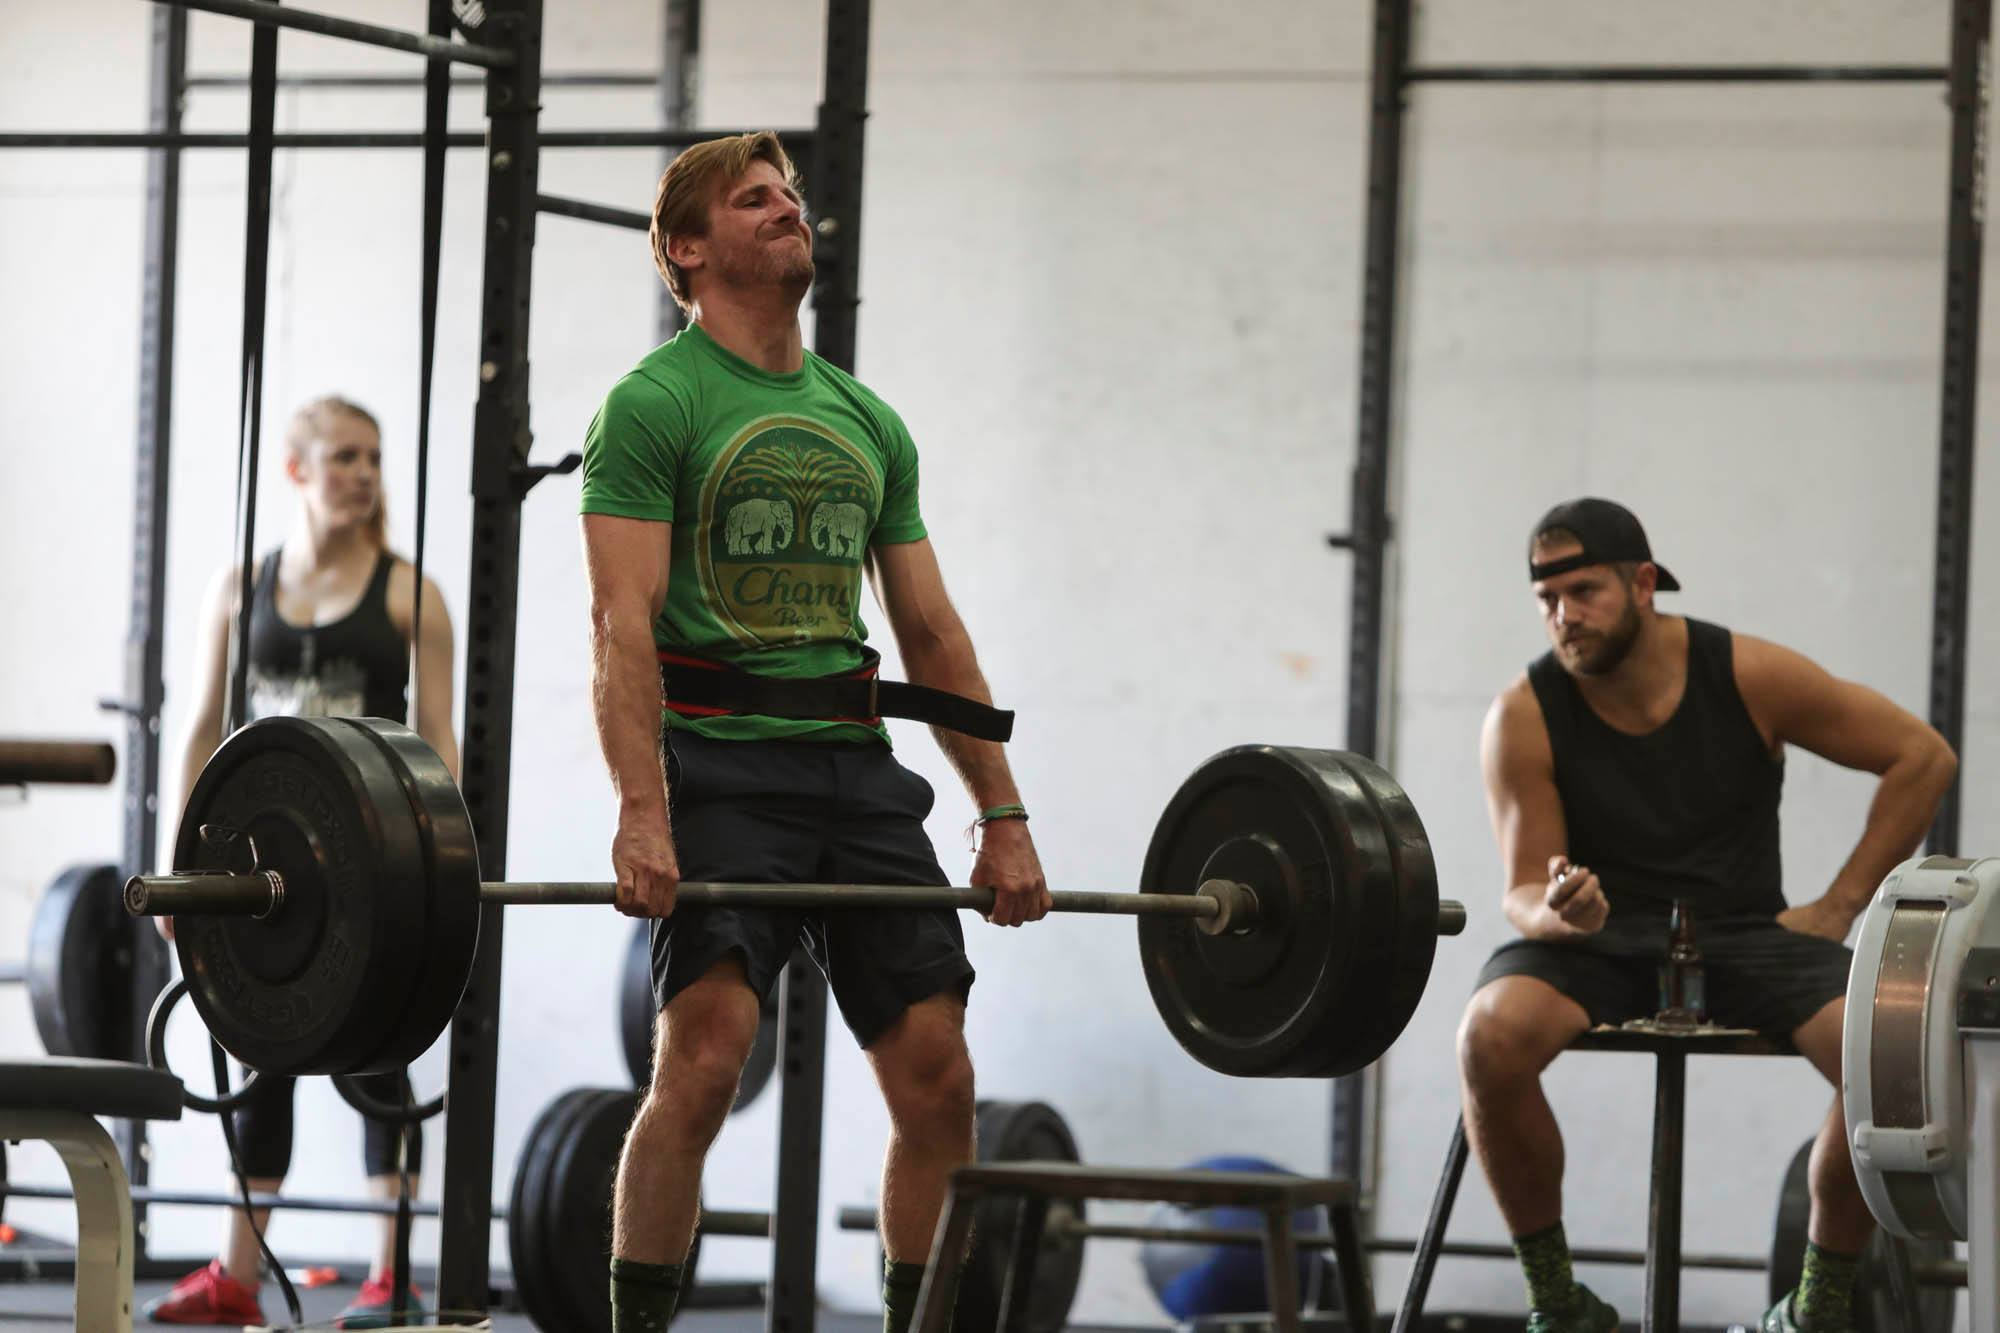 Kevin Beckering deadlifting with a neutral grip.